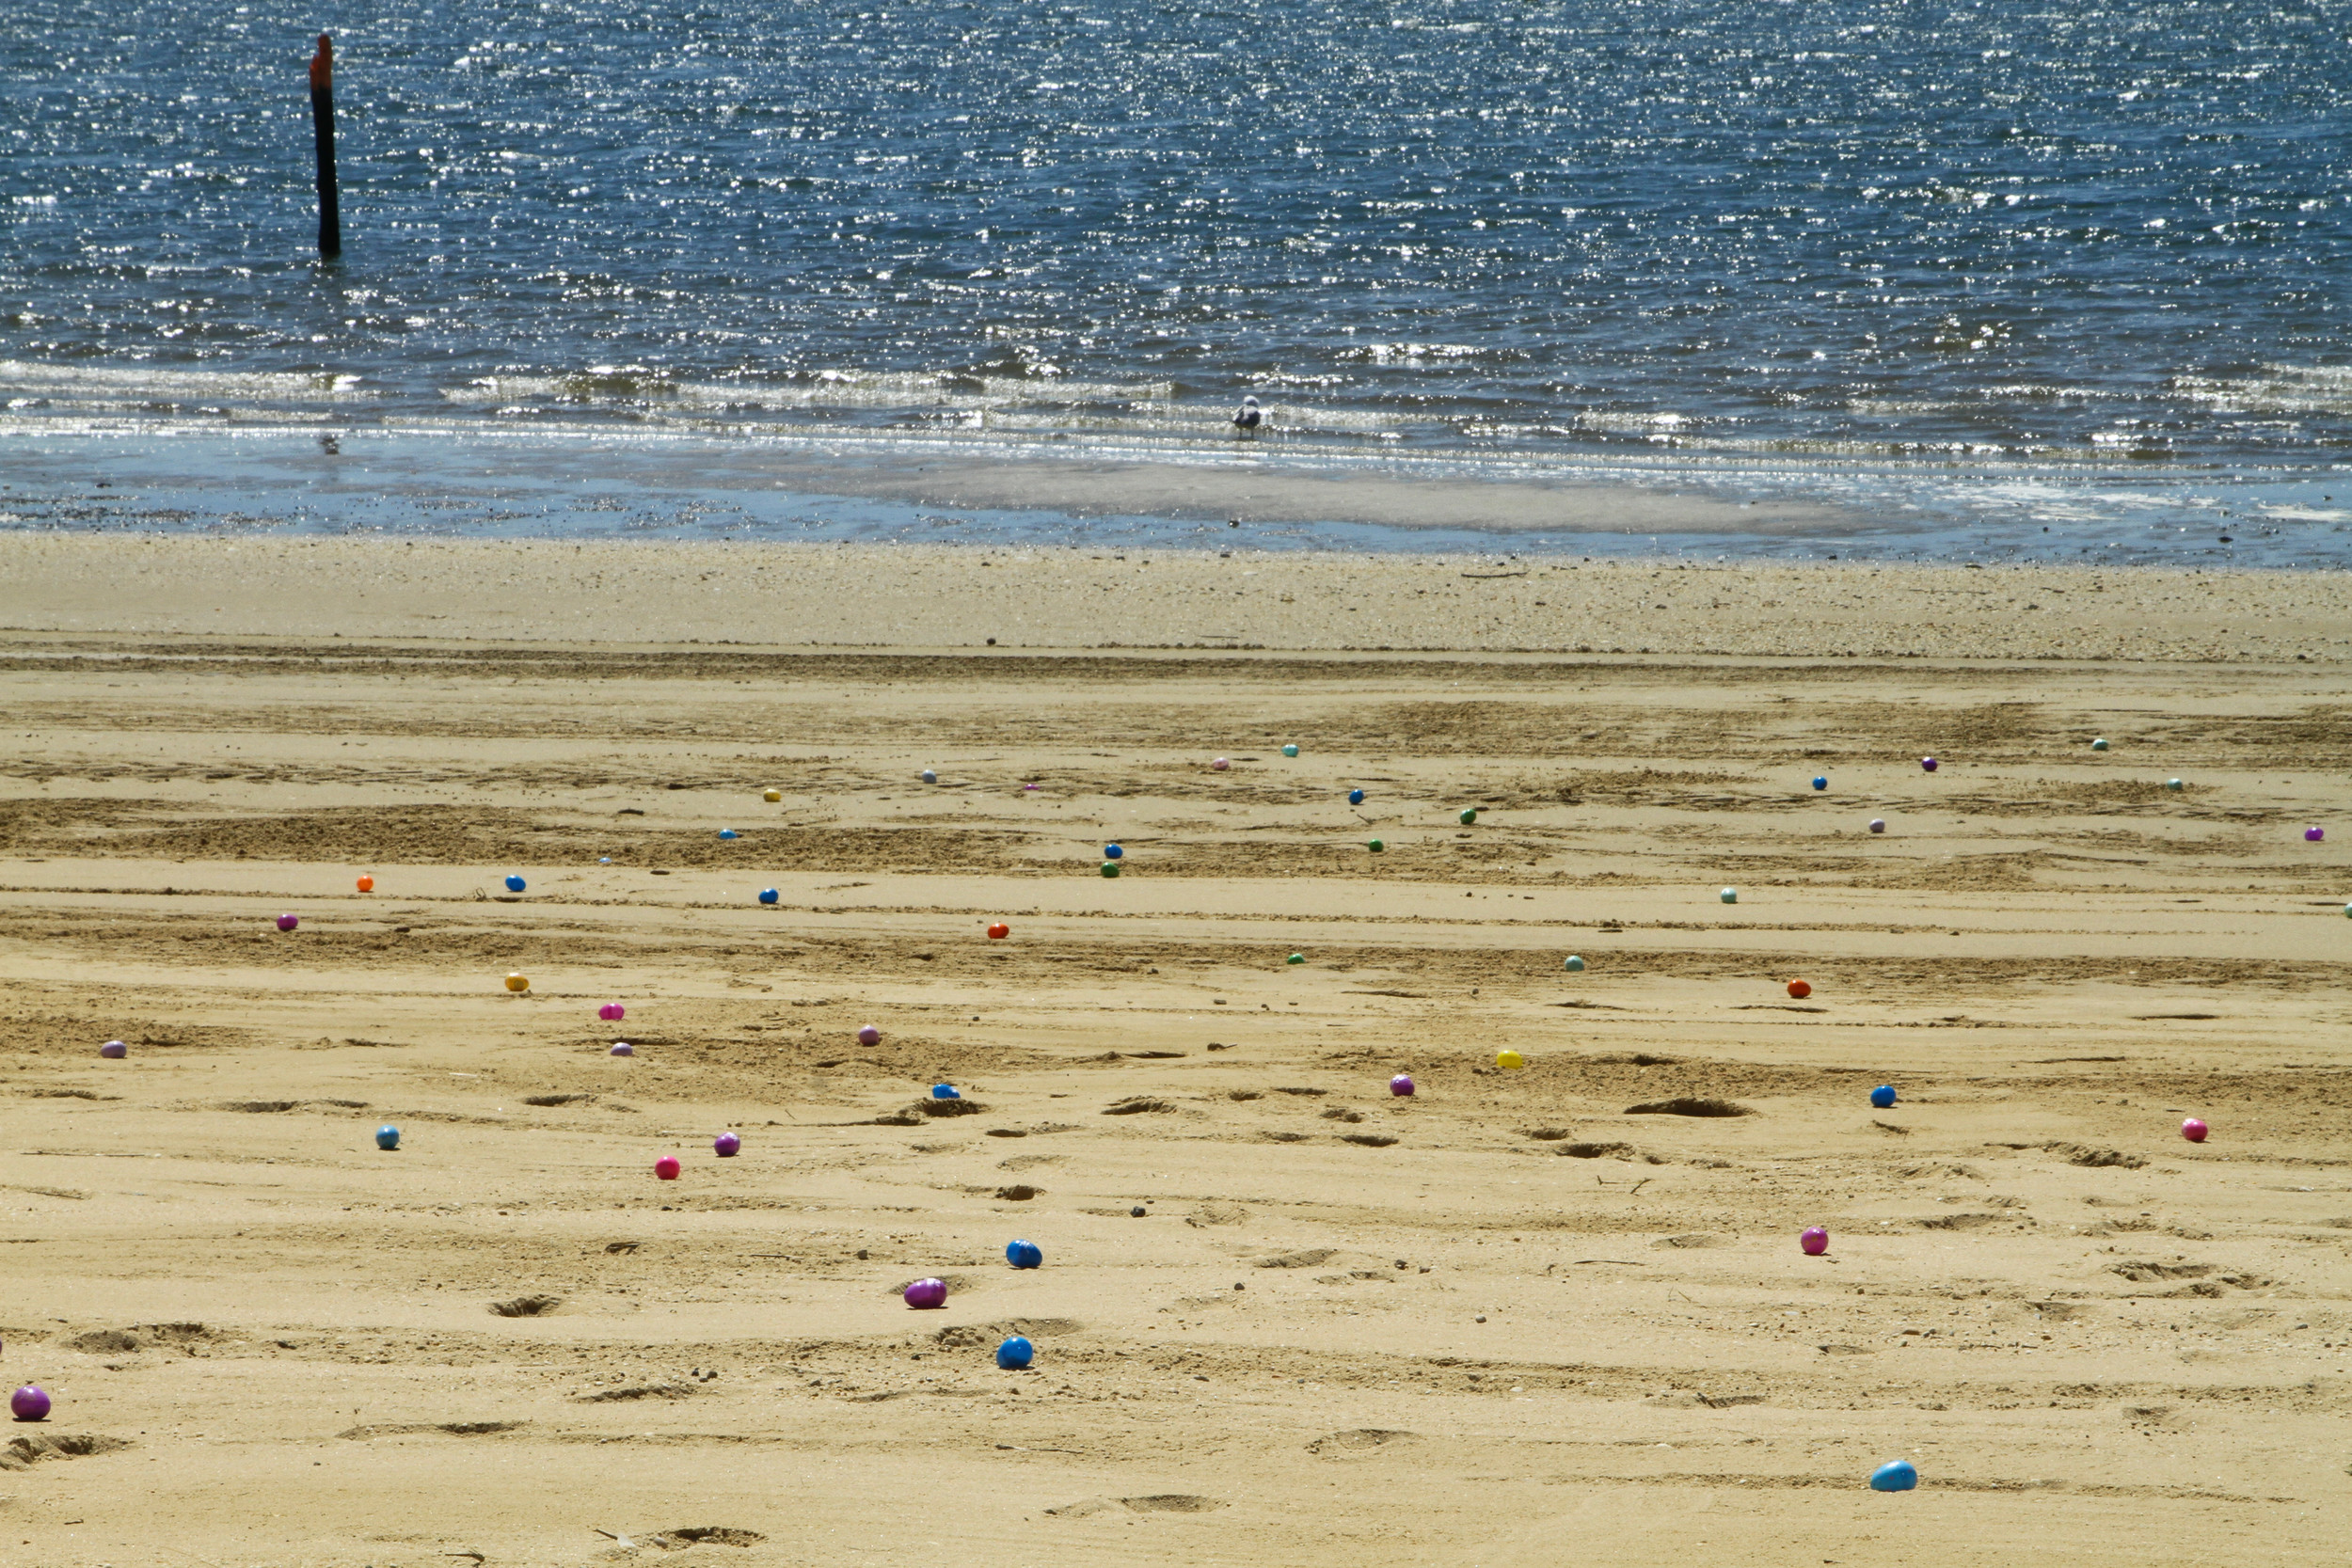 About 1,200 eggs lined the sandy Hewlett Point Park Beach at the annual egg hunt.